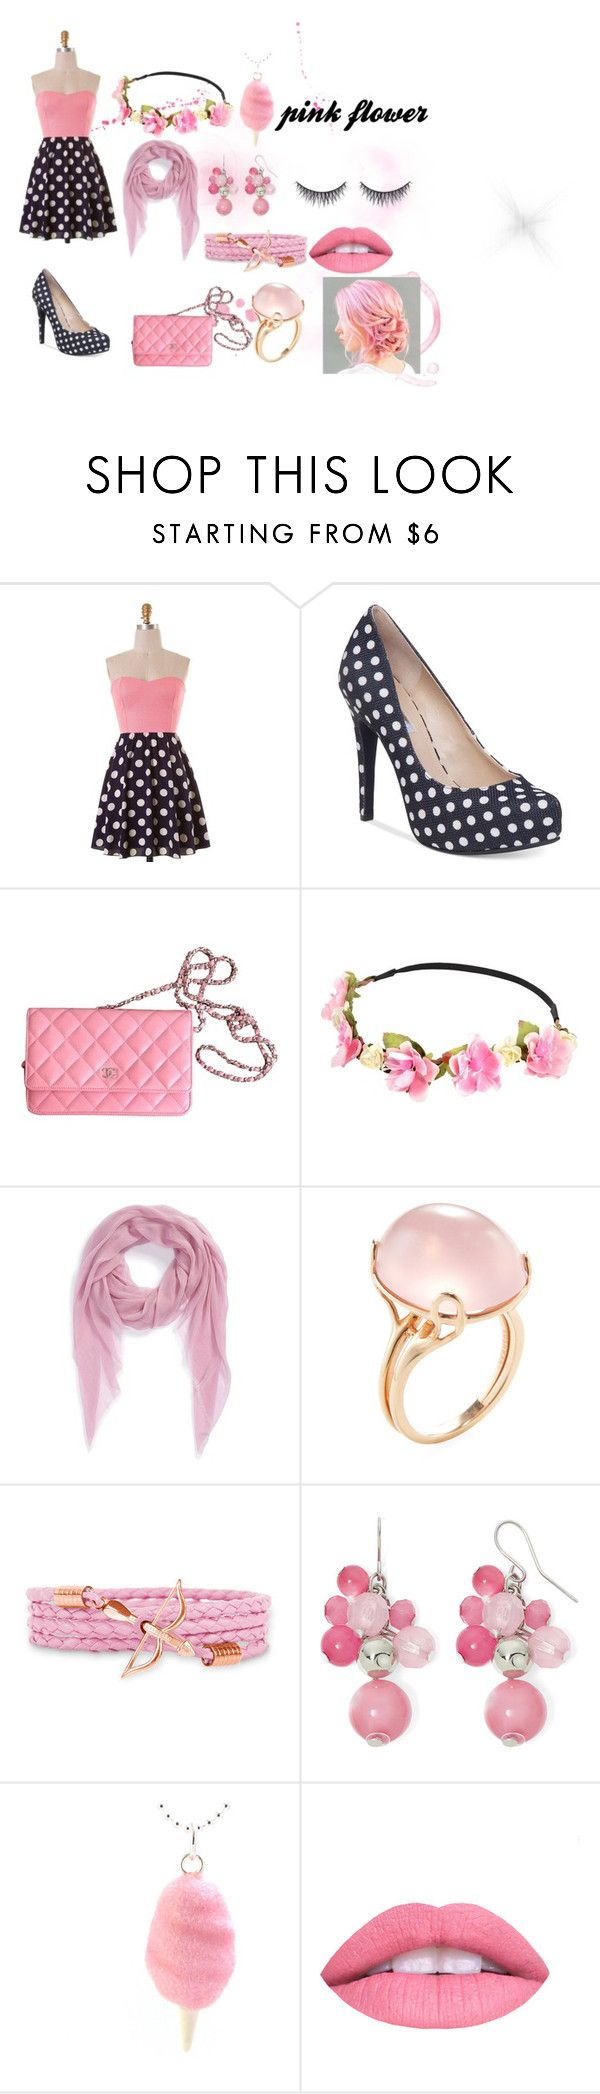 Takashi murakami sun flowers and contemporary art uniqlog -  Pink Flower By Electric Dimondkisses On Polyvore Featuring Bcbgeneration Chanel Nordstrom